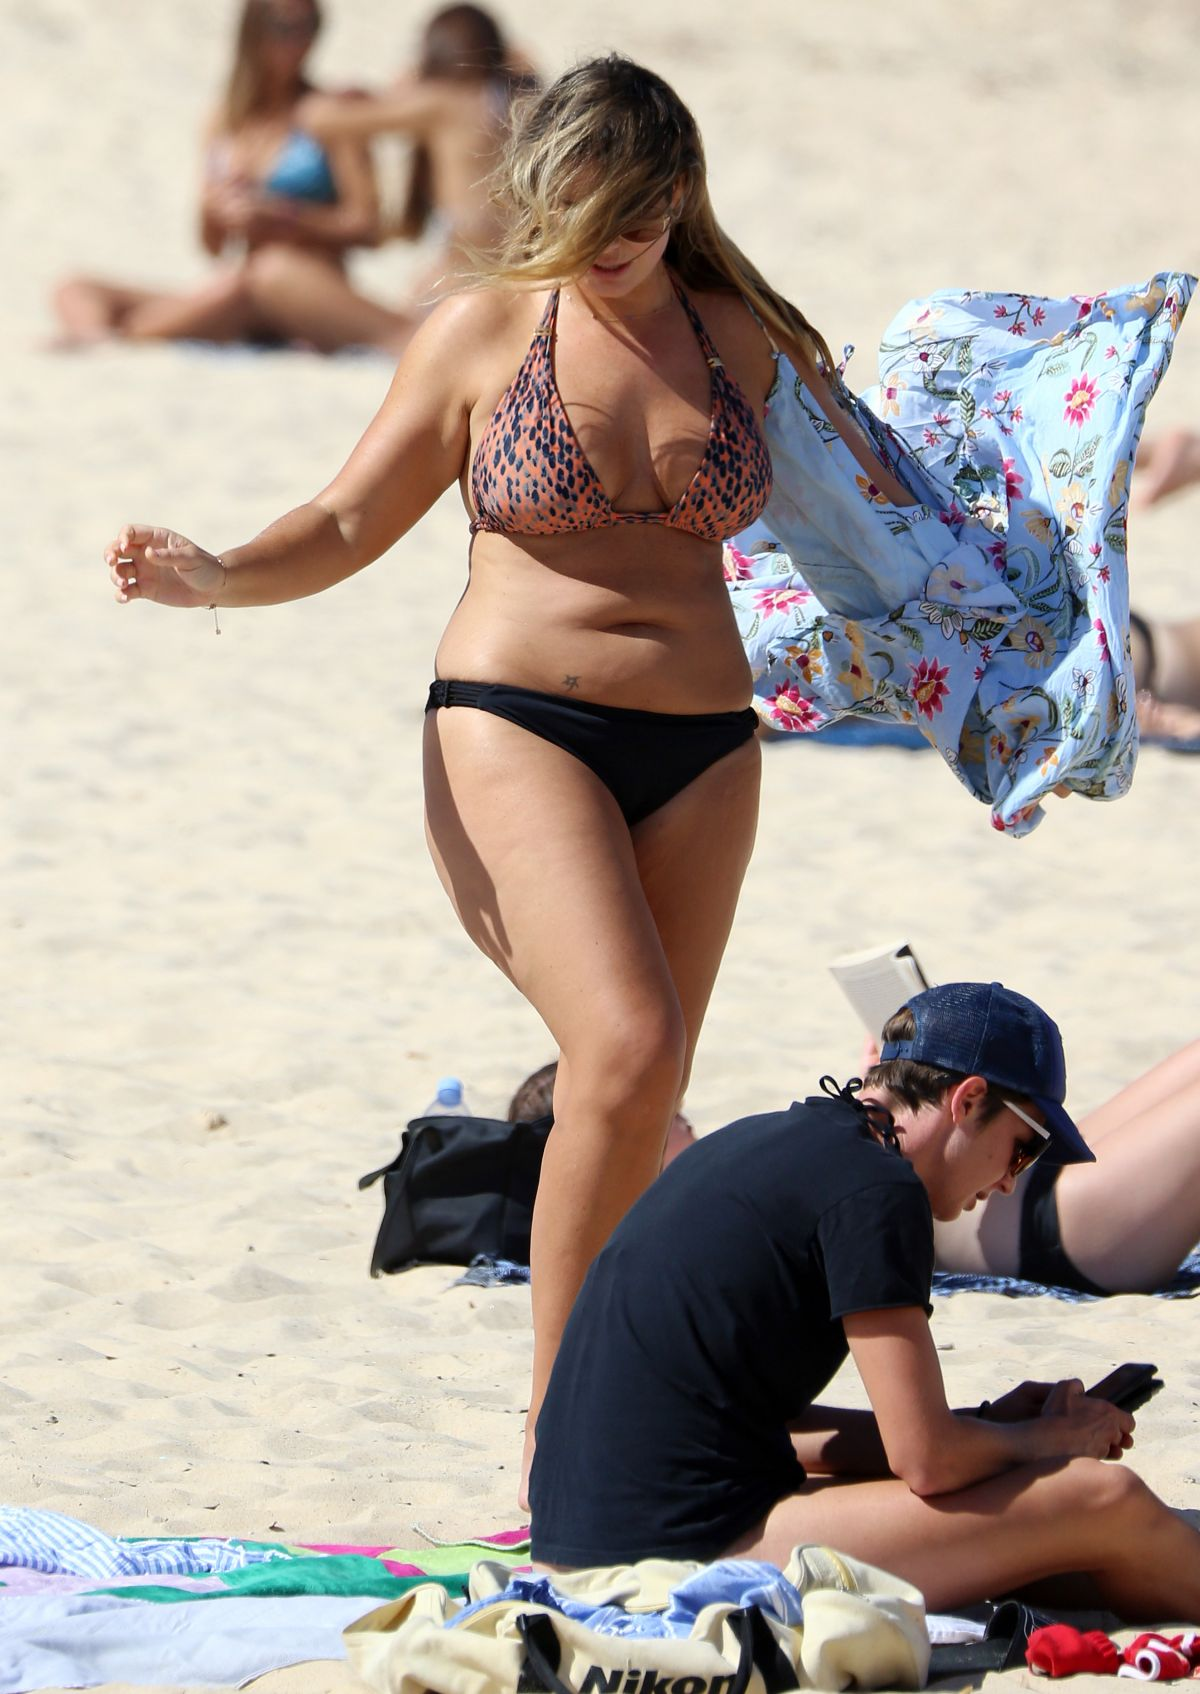 Fiona Falkiner in Bikini at Coogee Beach in Sydney Pic 11 of 35